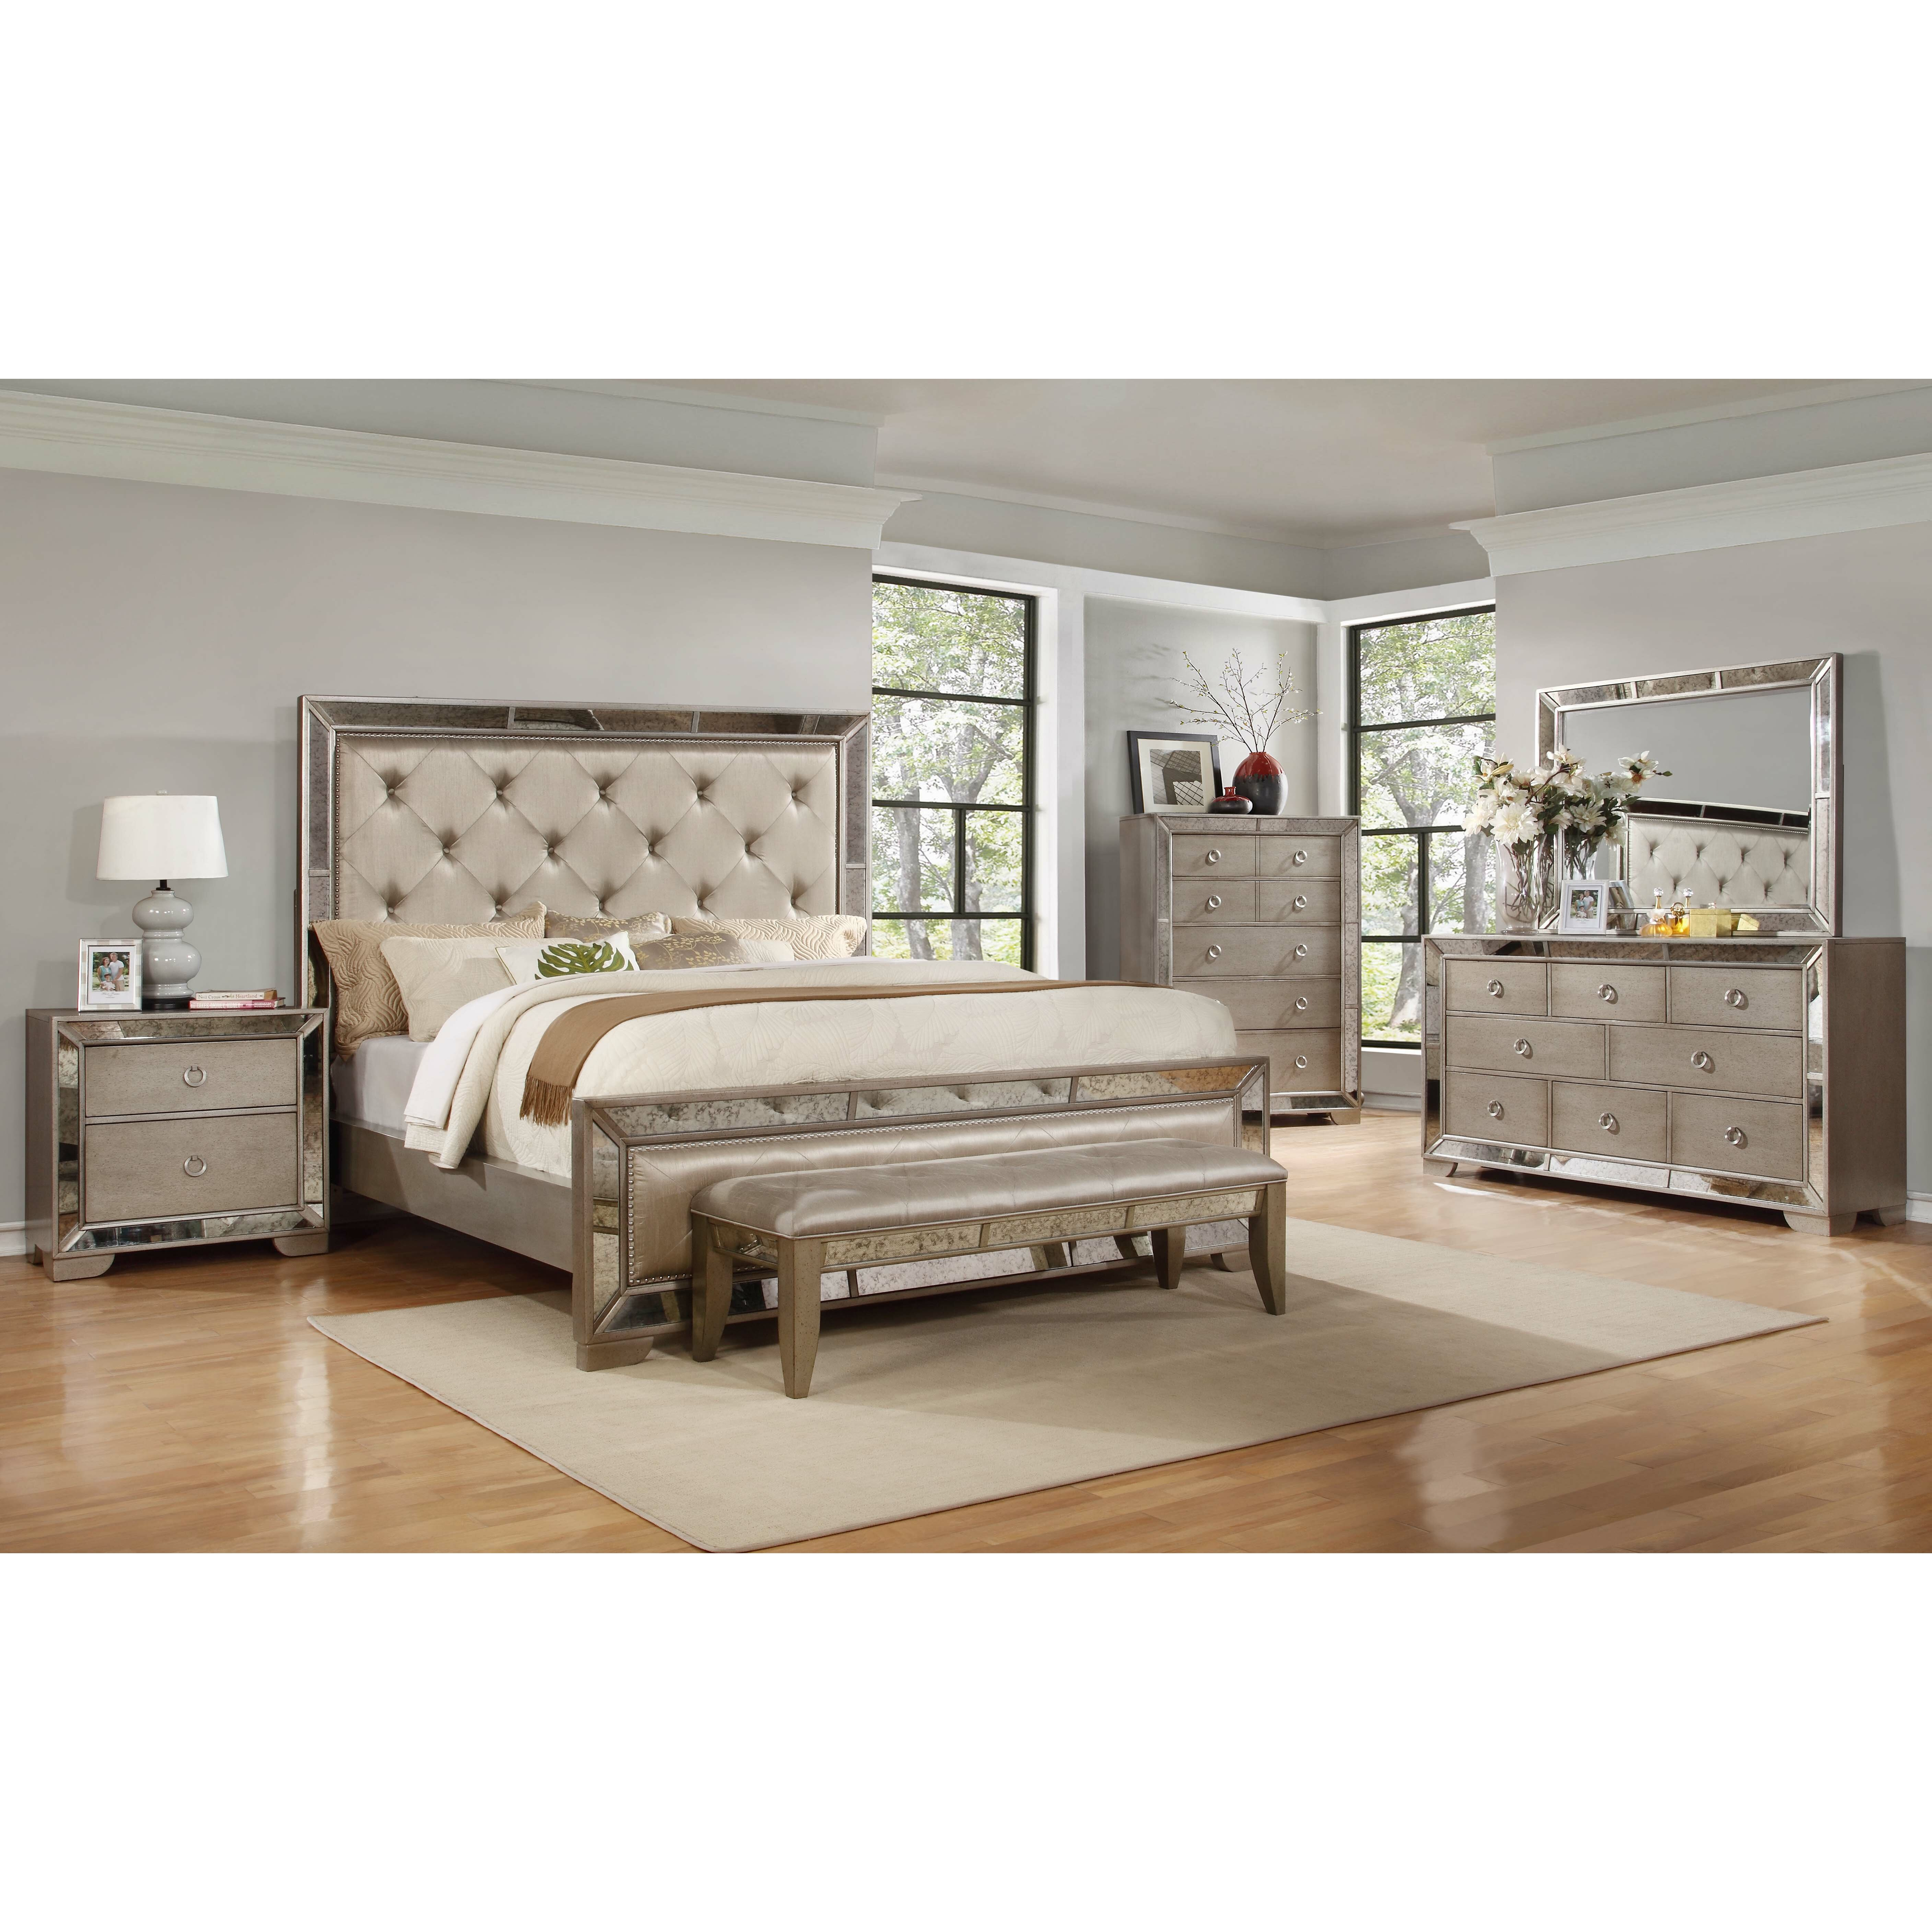 House Of Hampton Chesmore Upholstered Platform Bed